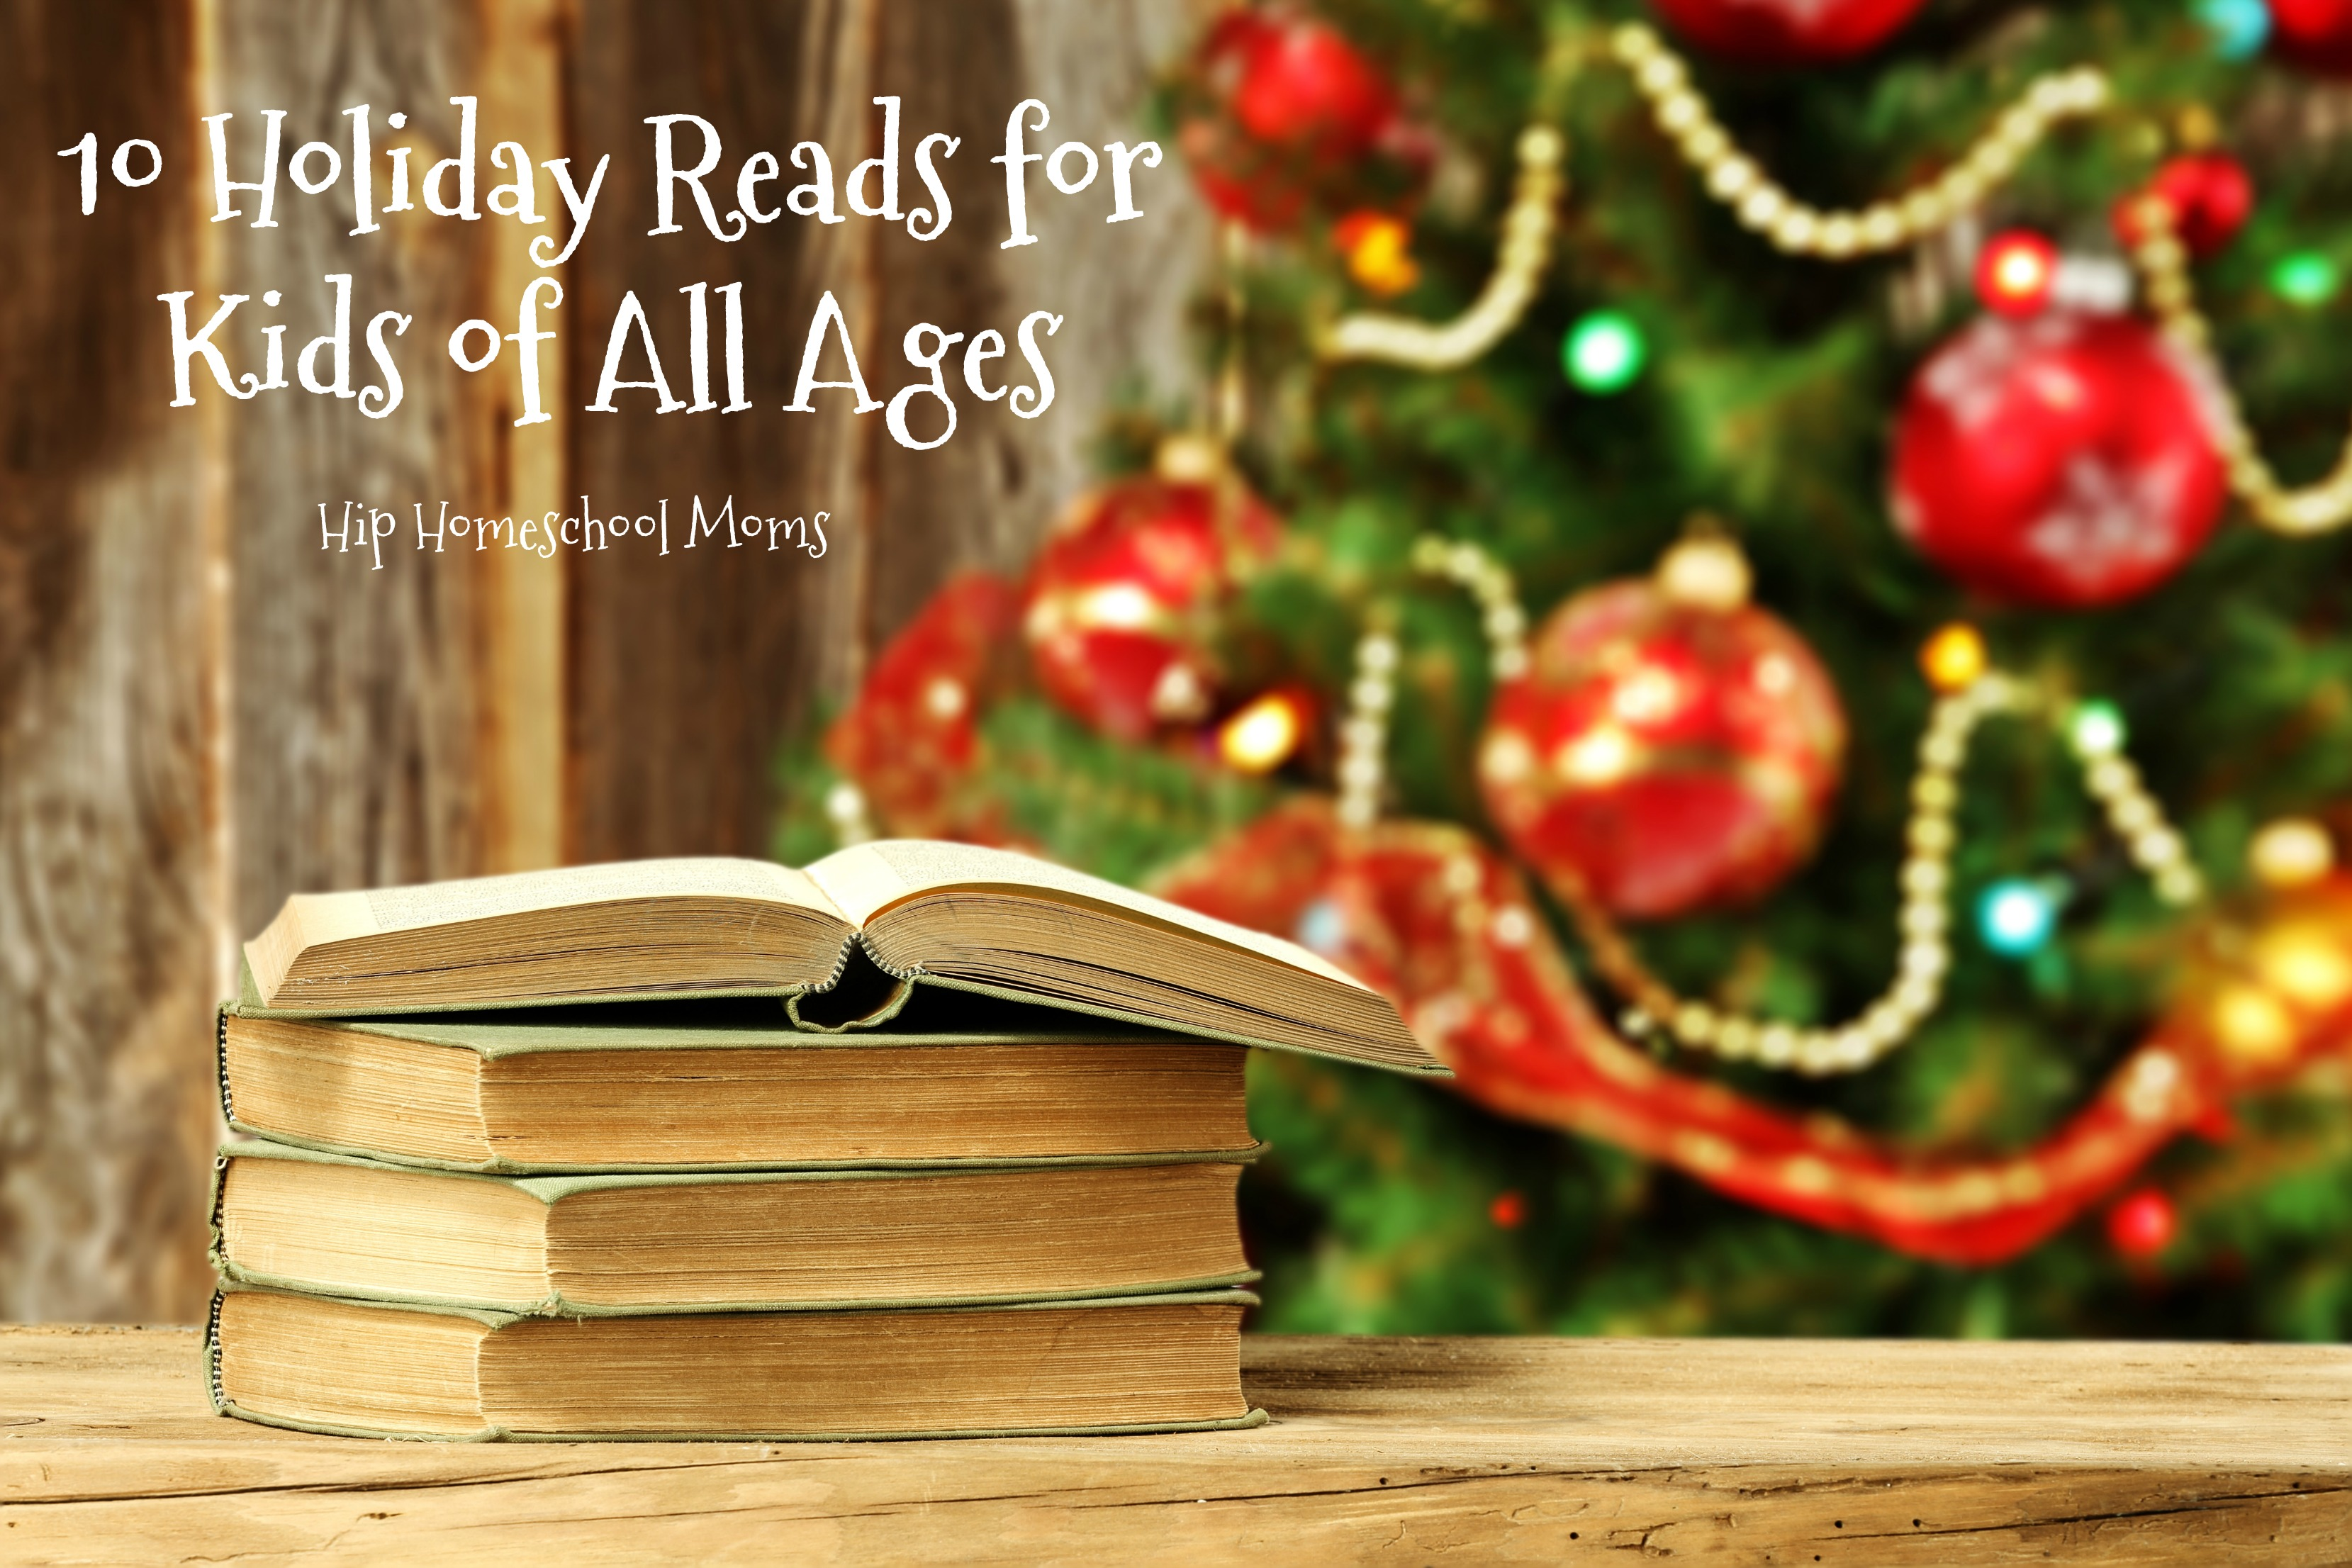 10 Holiday Reads for Kids of All Ages